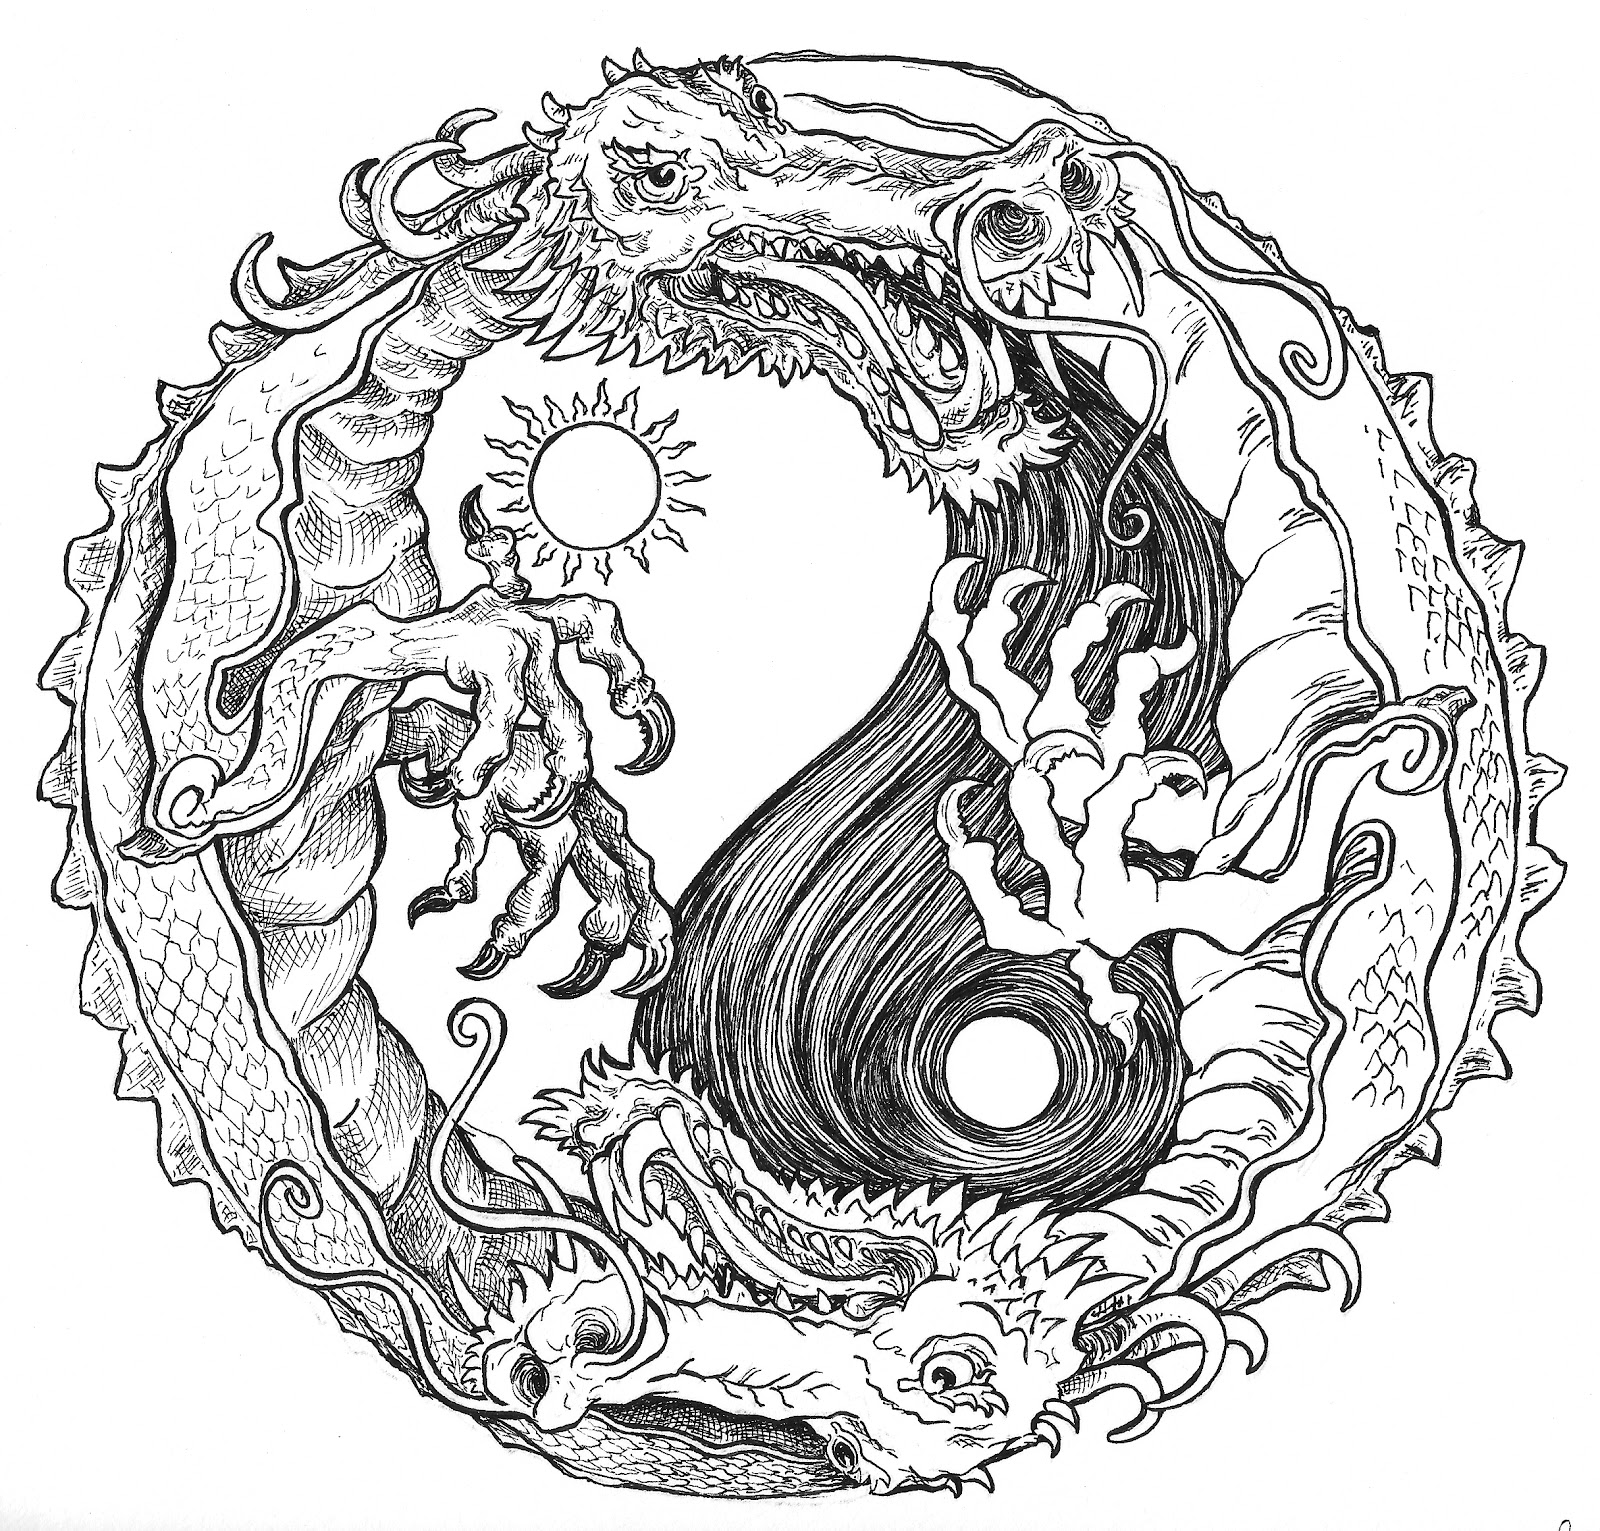 Ying yang dream catcher coloring pages for Ying yang coloring pages